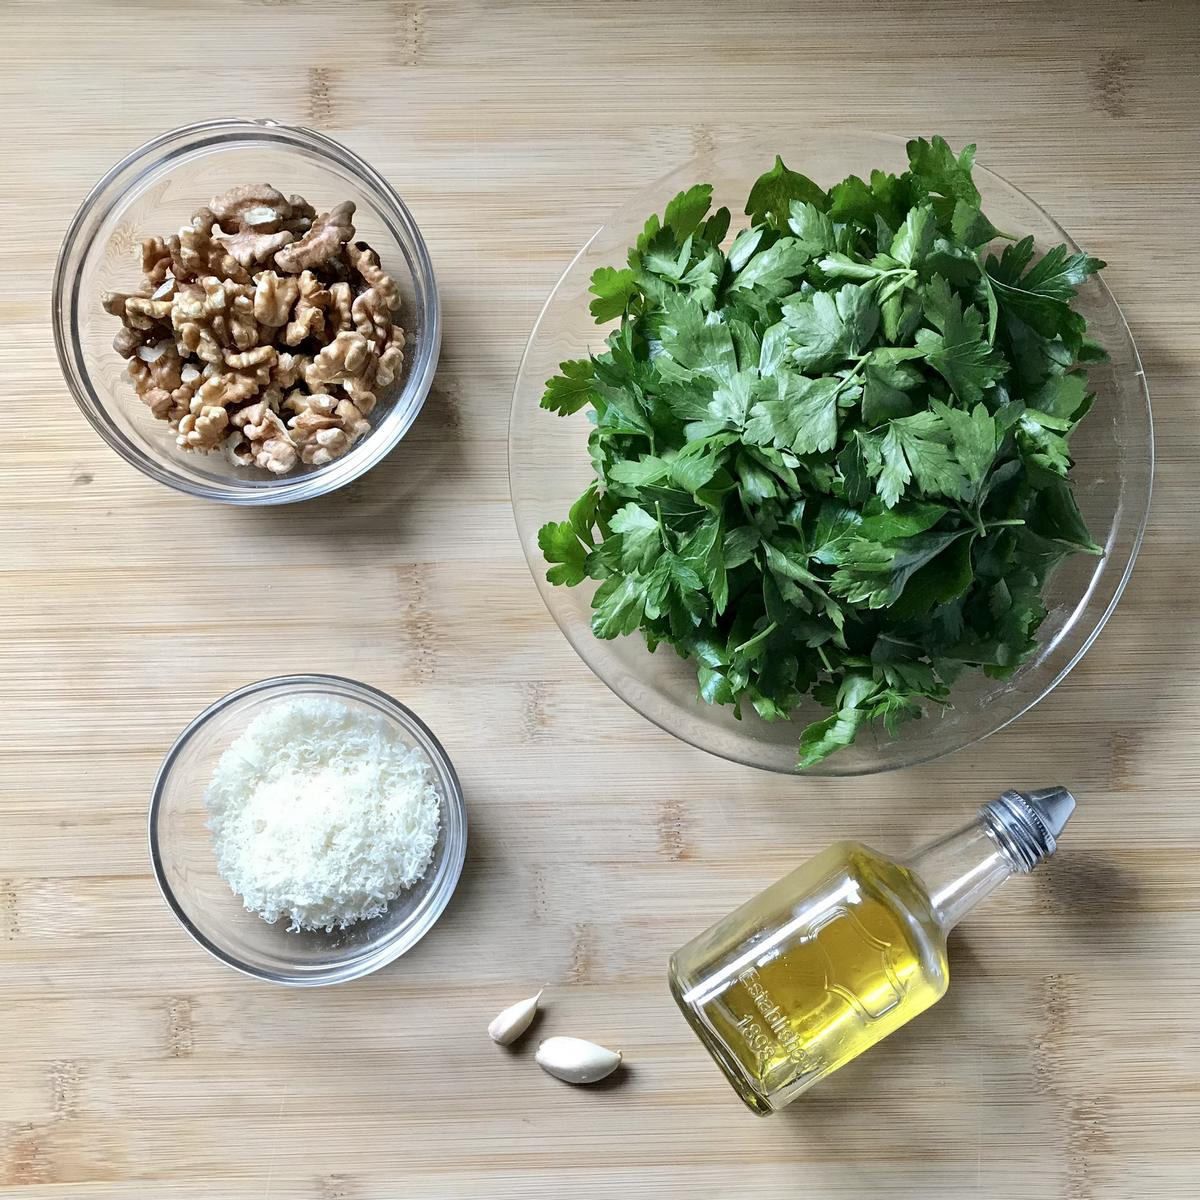 Walnuts, cheese, parsley, garlic and olive oil on a wooden board.